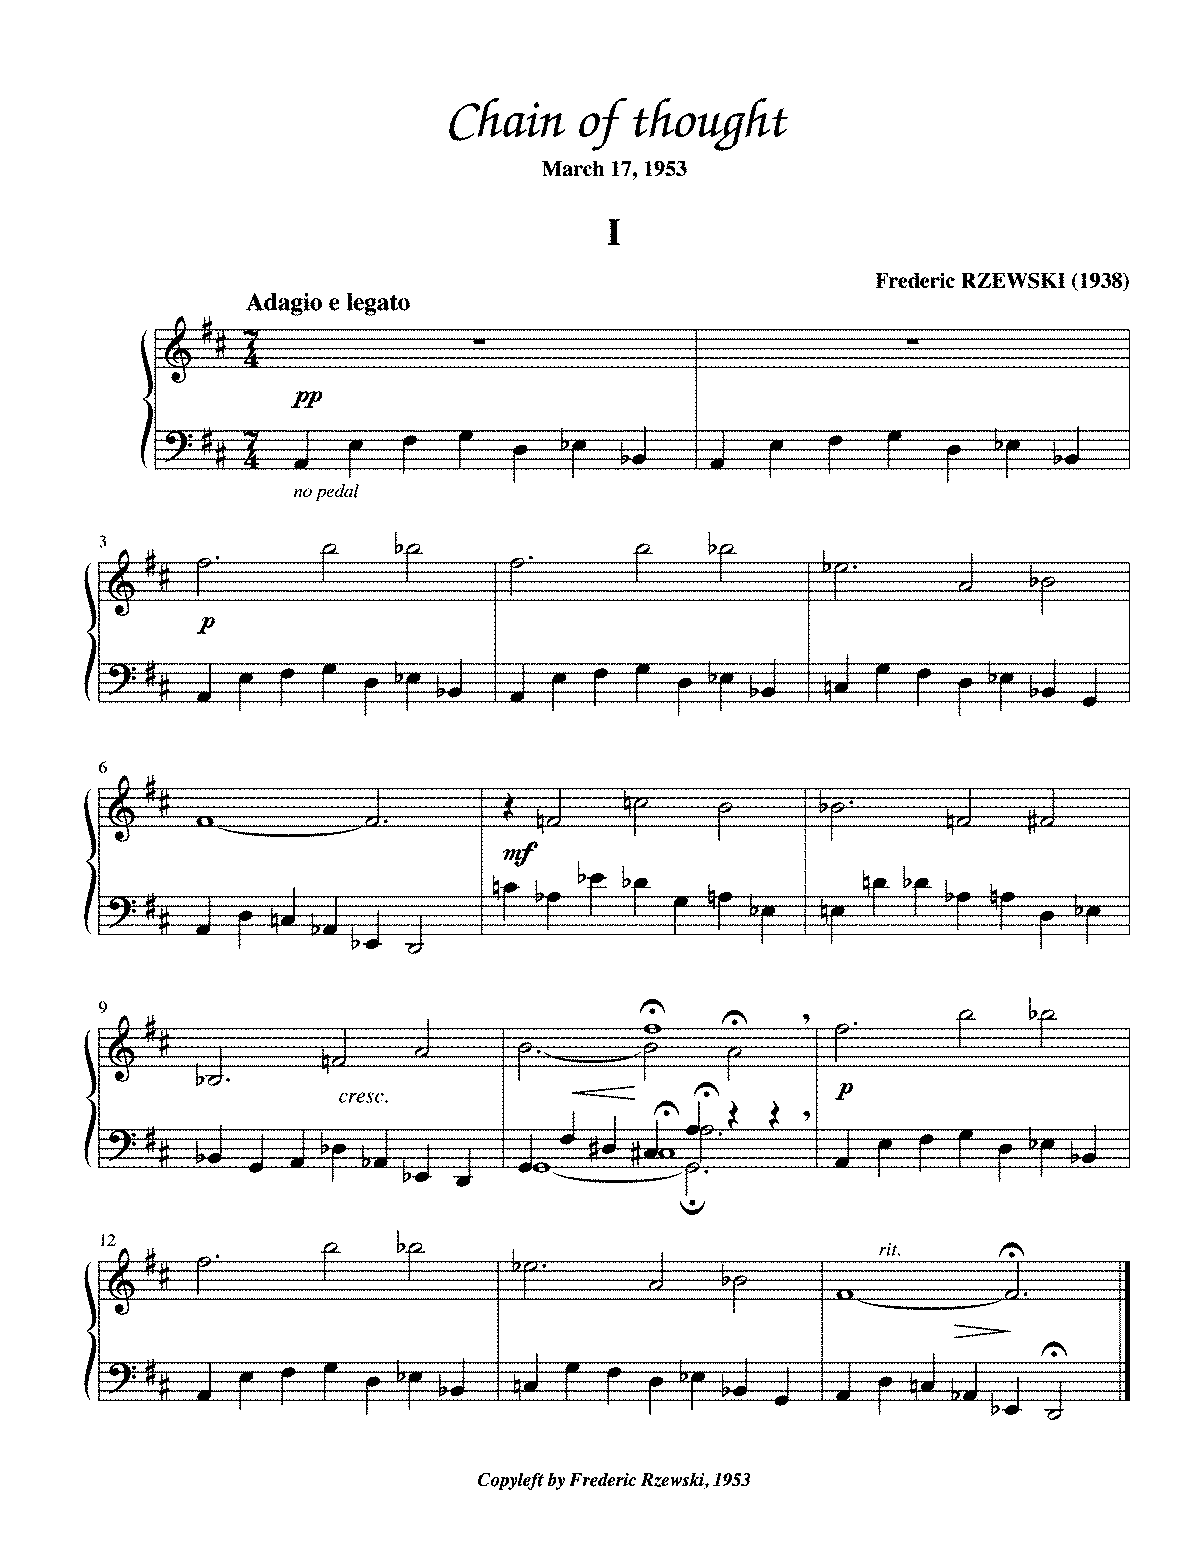 WIMA.4a51-Rzewski Chain of thought.pdf